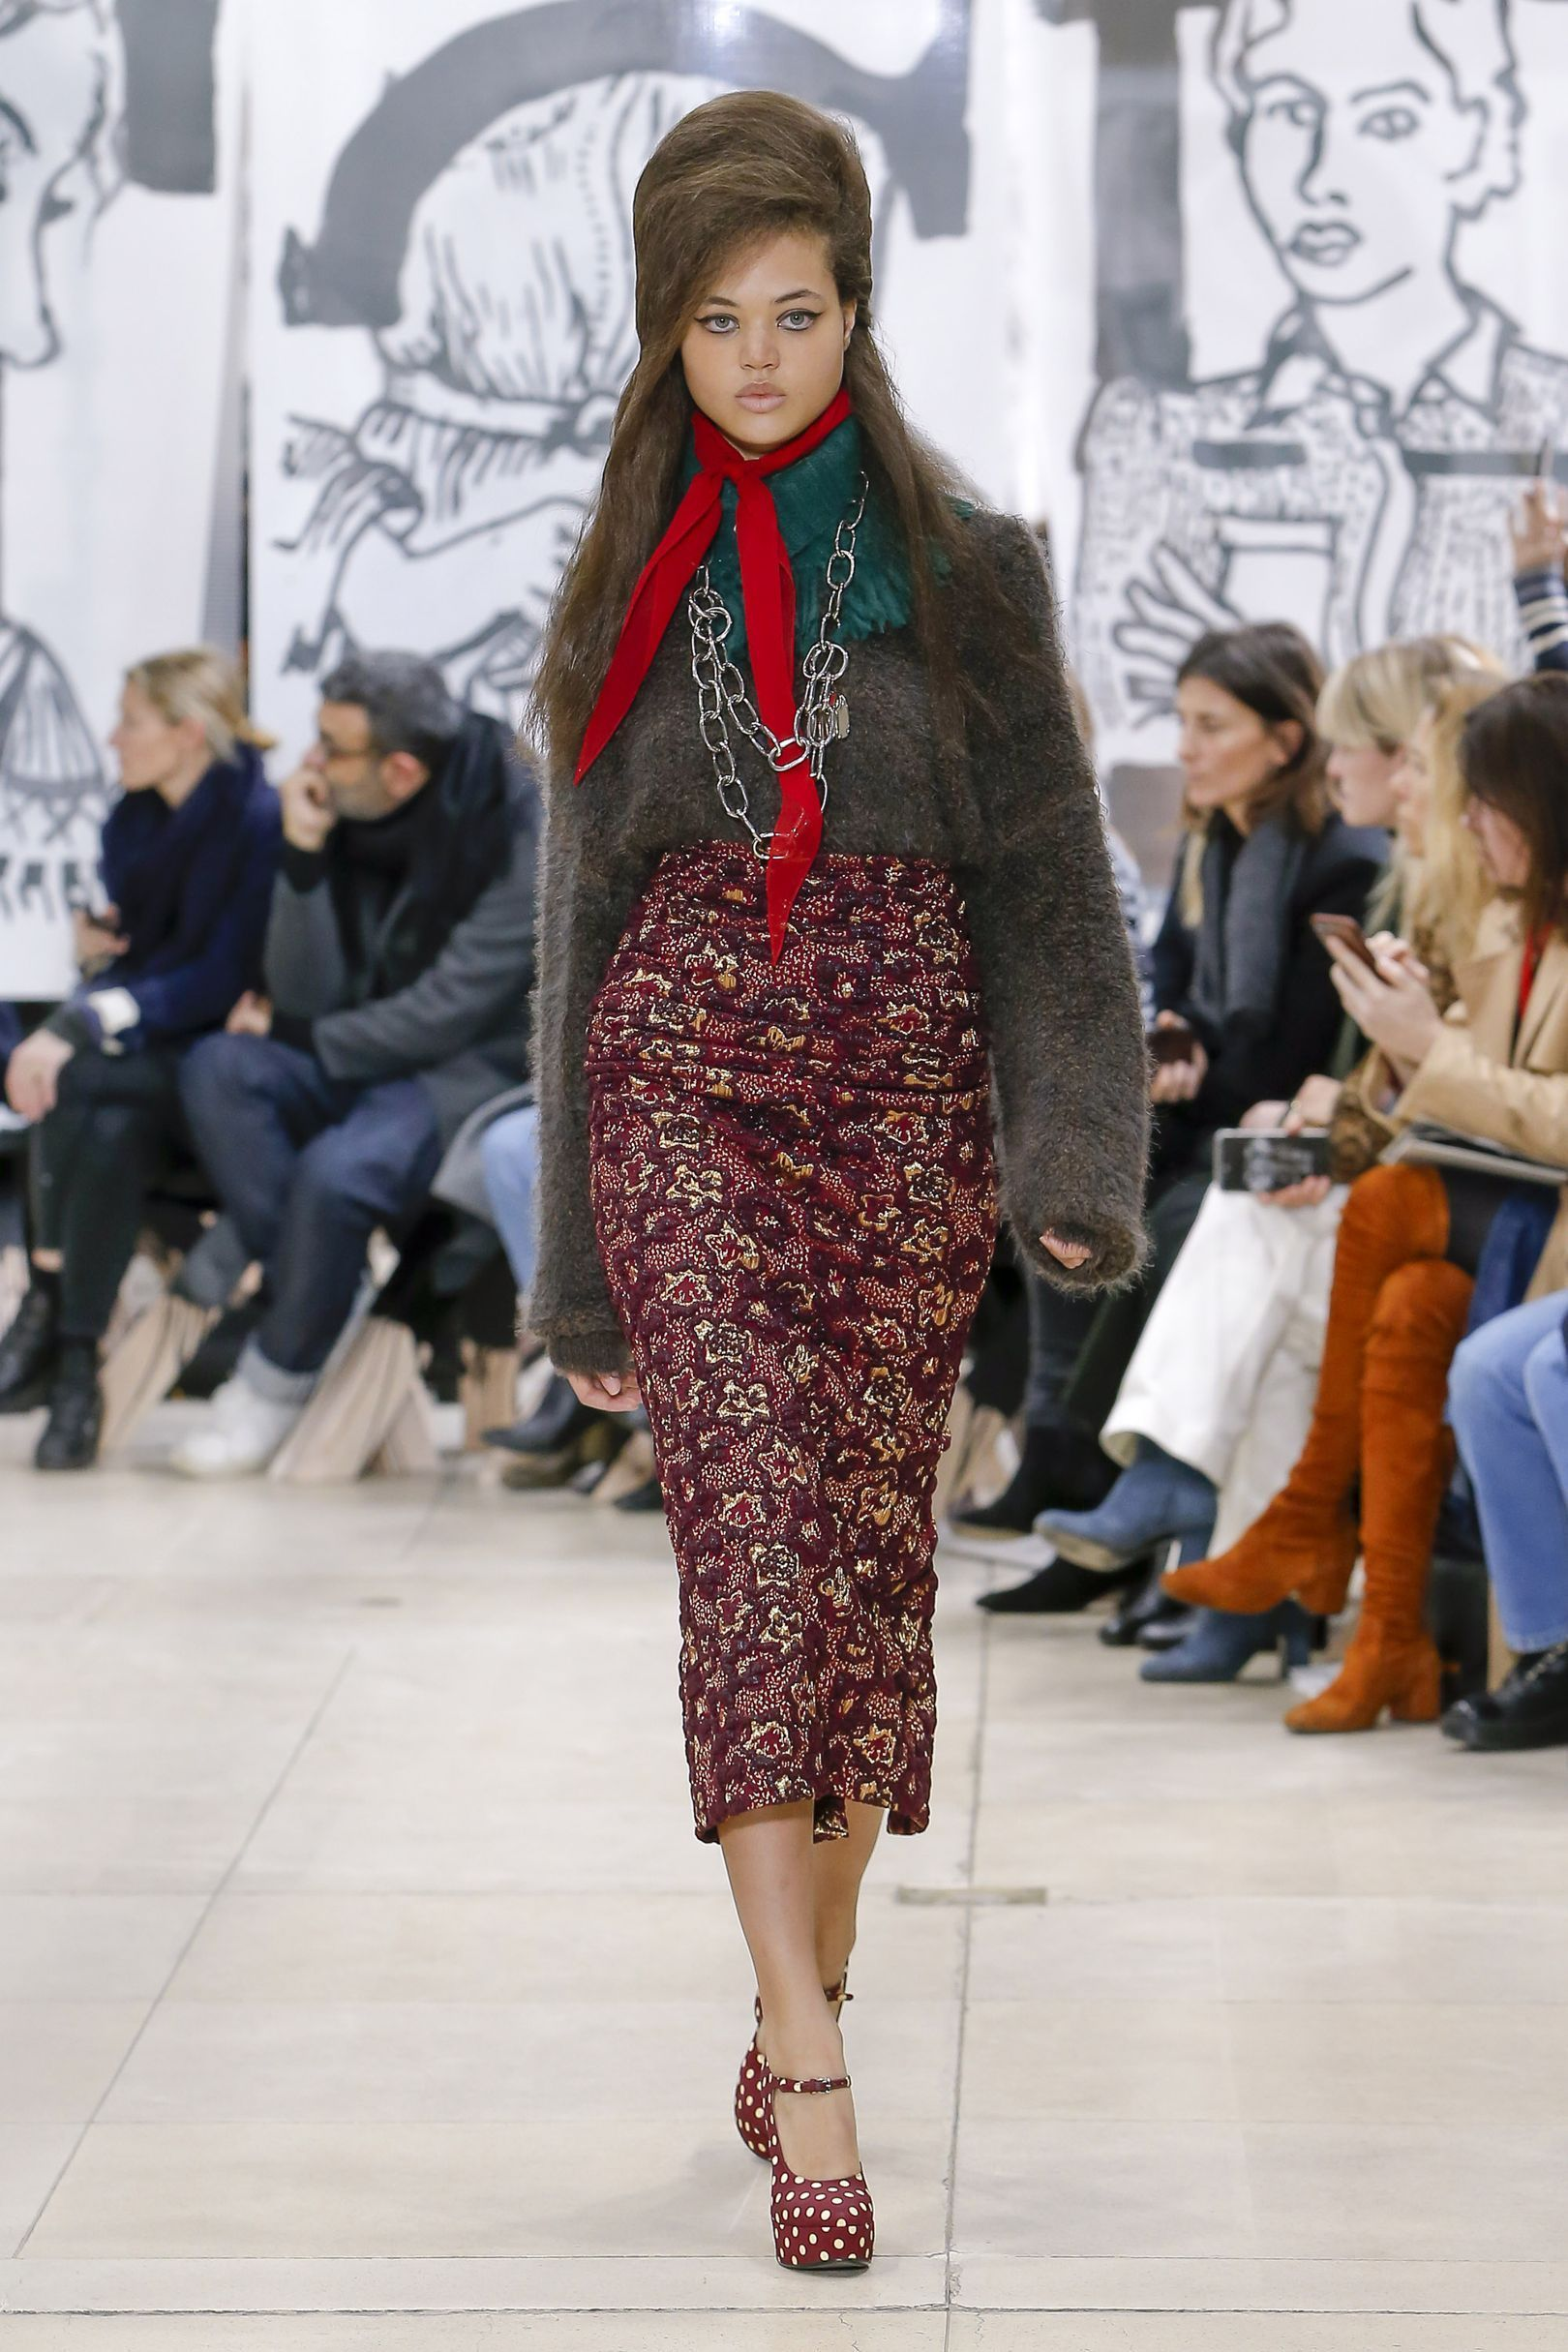 aadf122293f1 Miu Miu Autumn Winter 2018 Ready-To-Wear Collection  FashionTrends2018